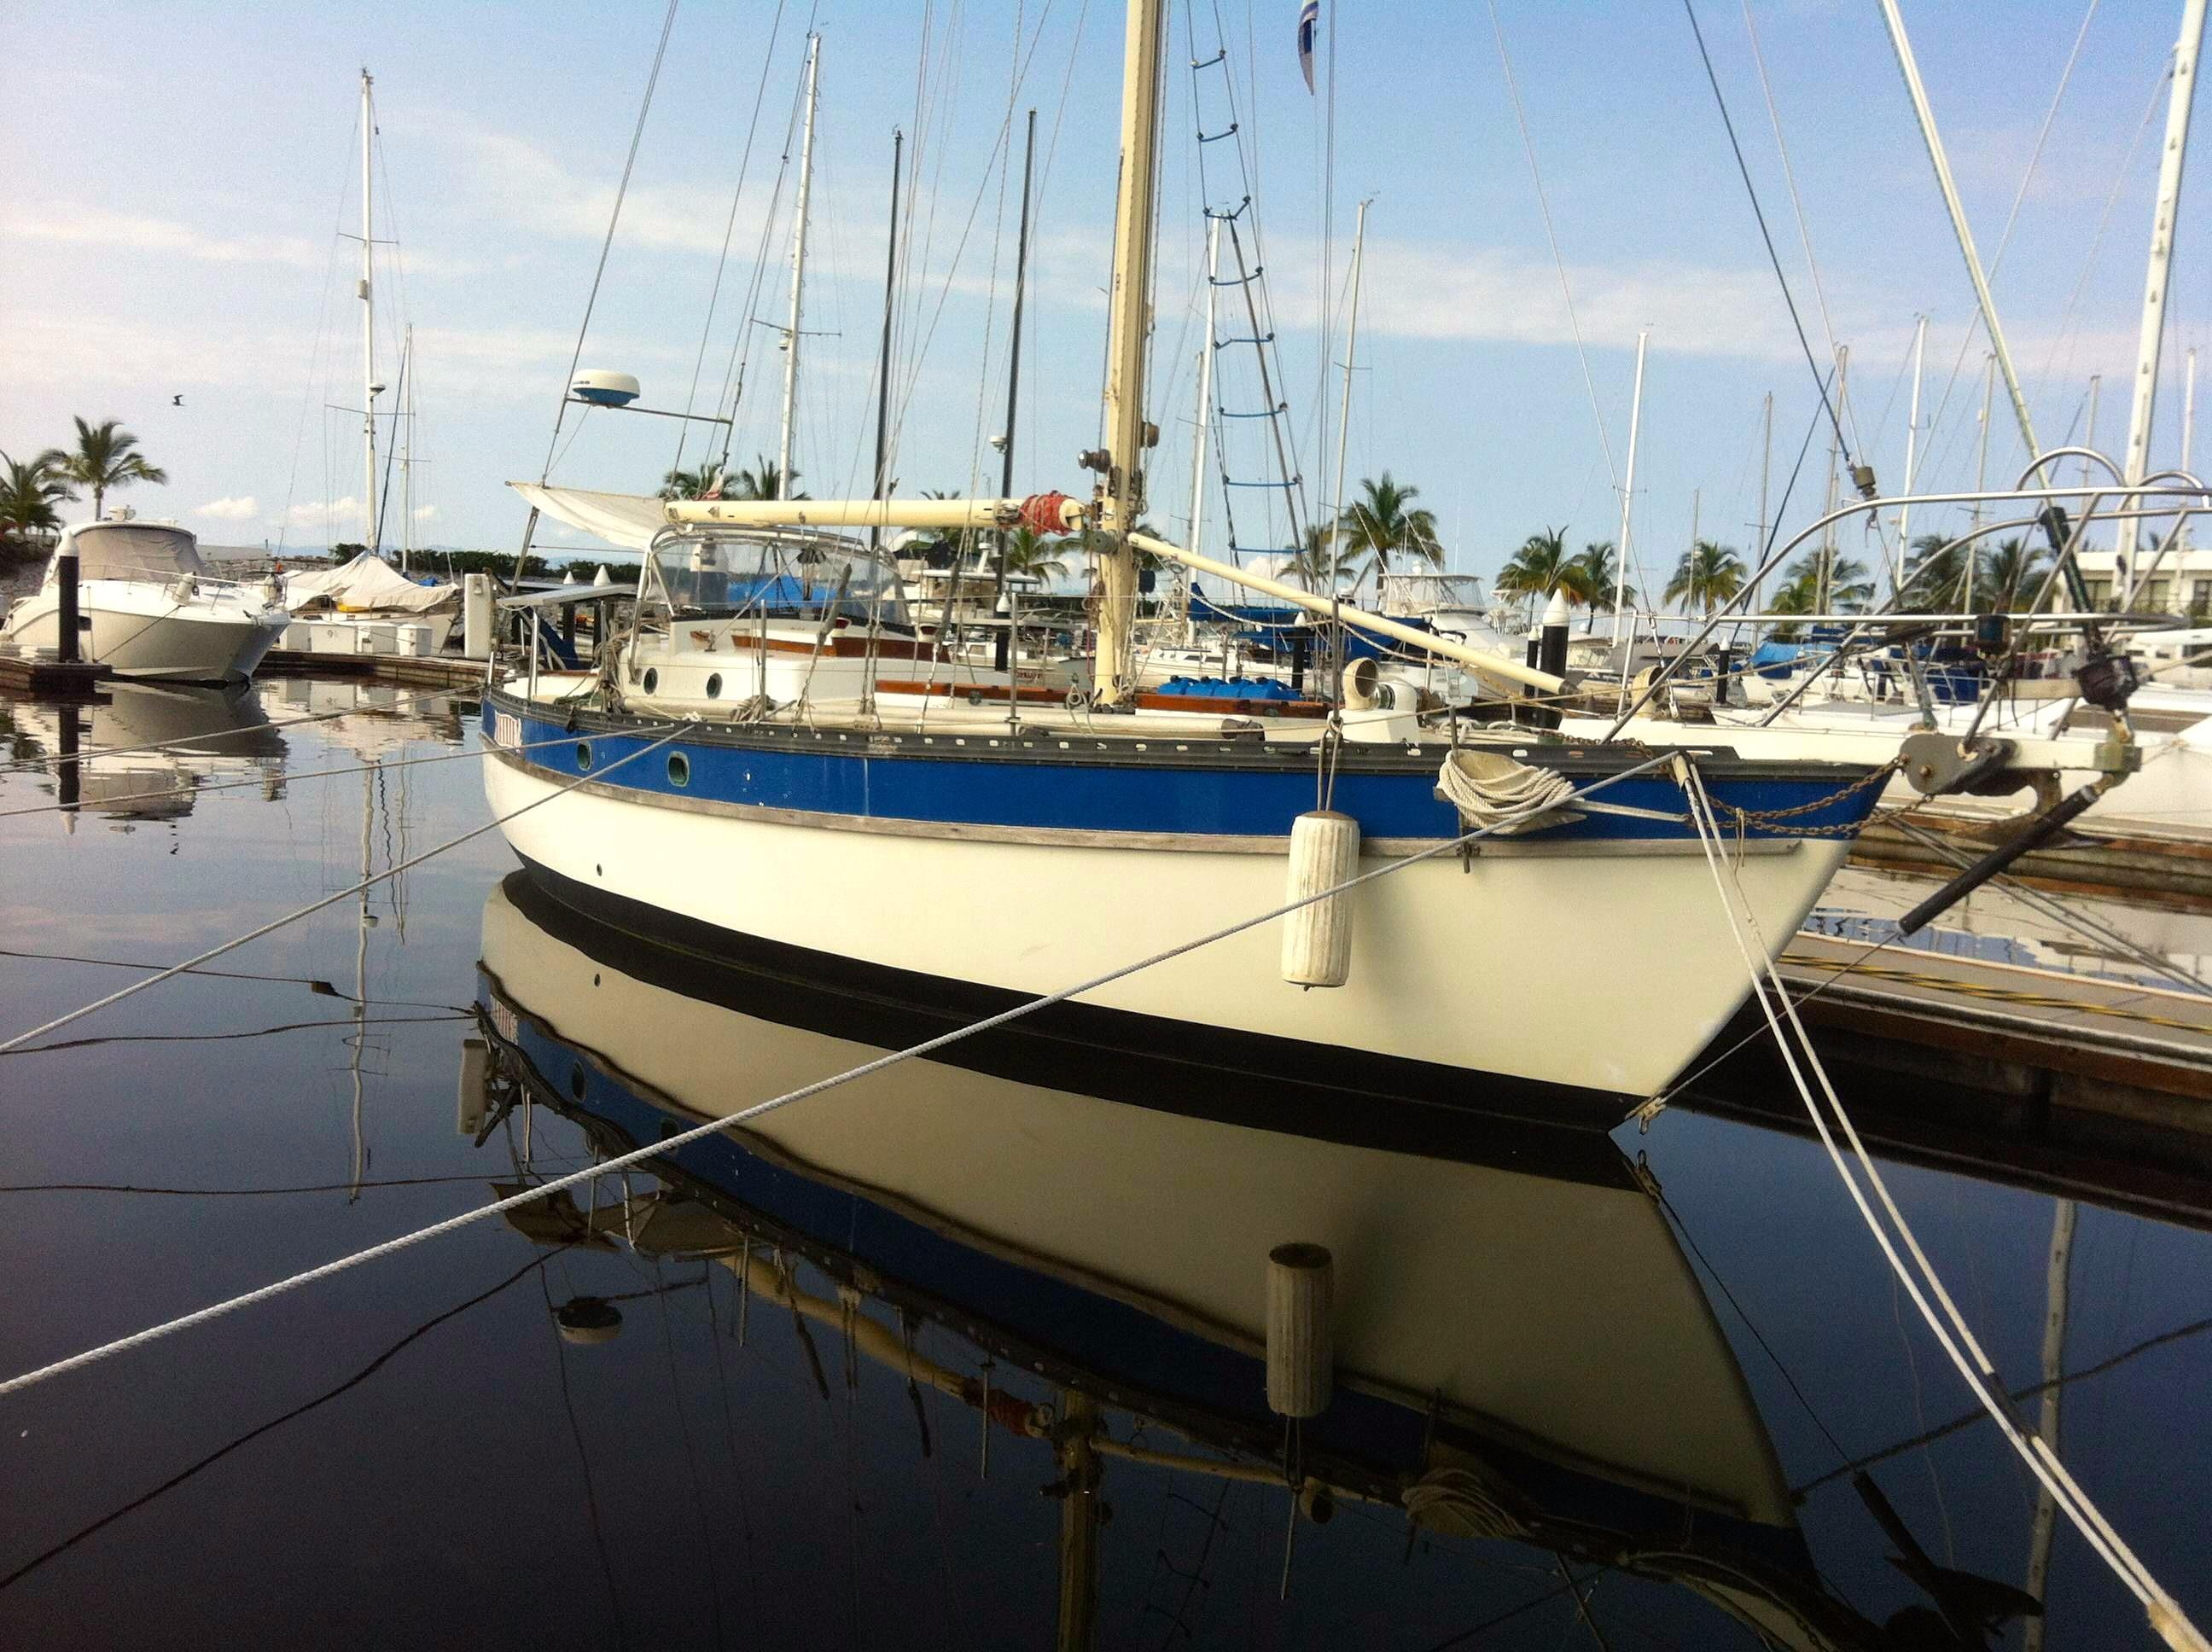 36' Cascade Sloop+Boat for sale!